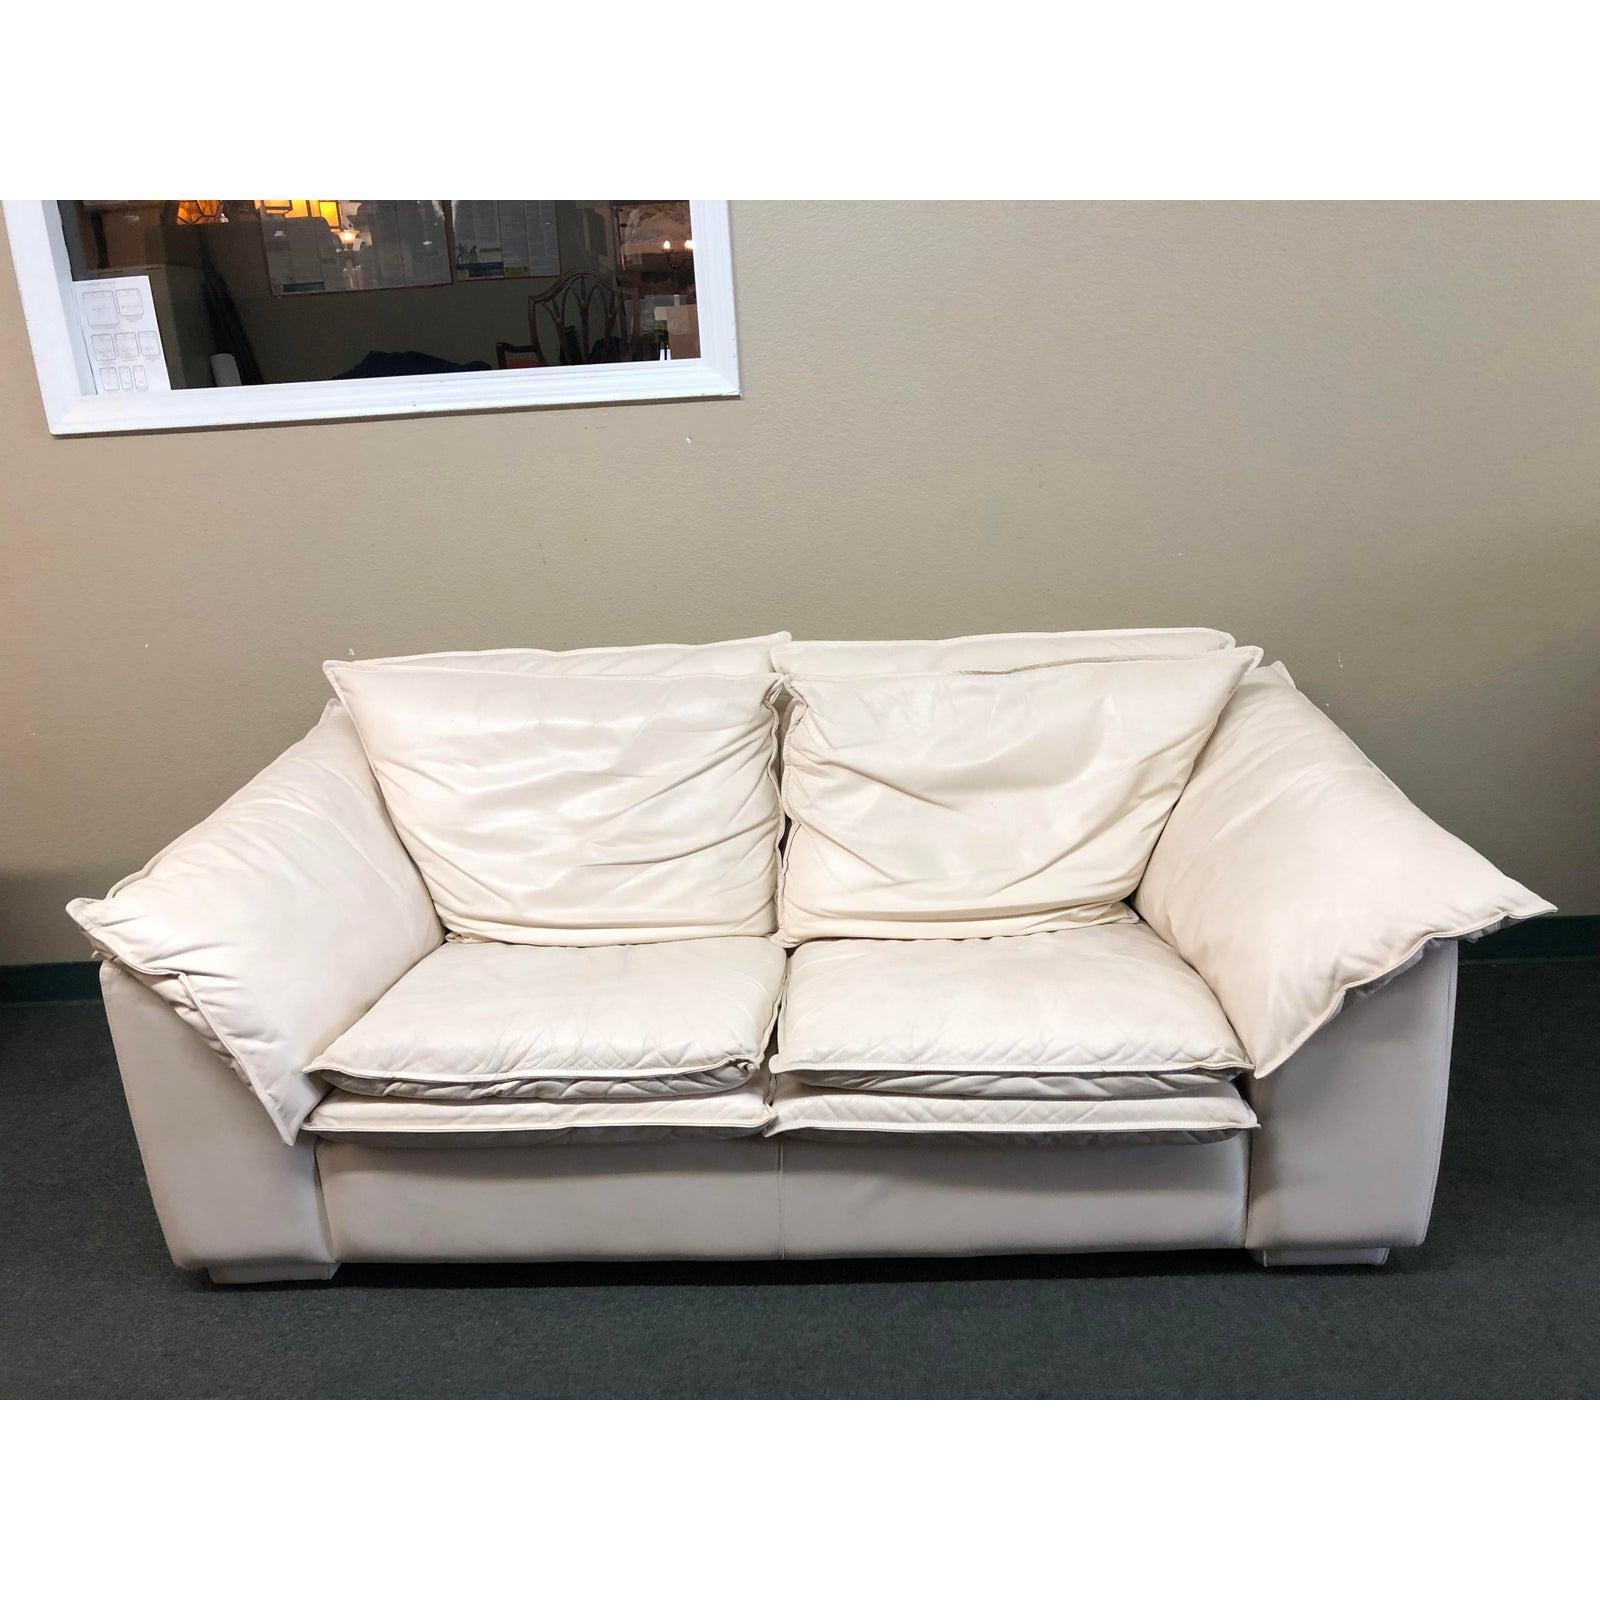 Excellent Leather Loveseat From Leather Center For Sale At 1Stdibs Uwap Interior Chair Design Uwaporg